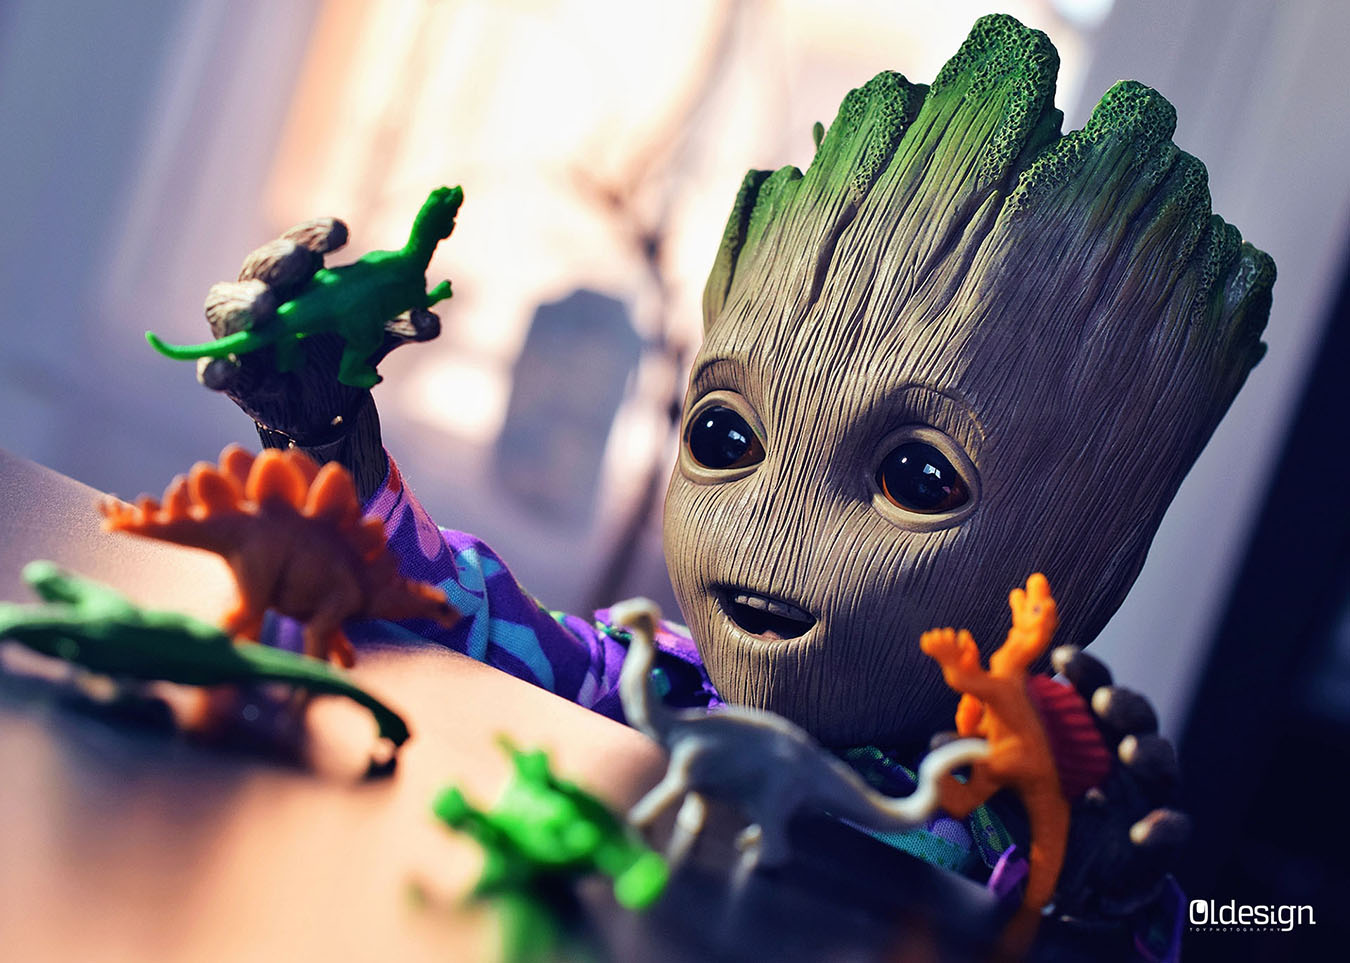 oldesign_babygroot_01